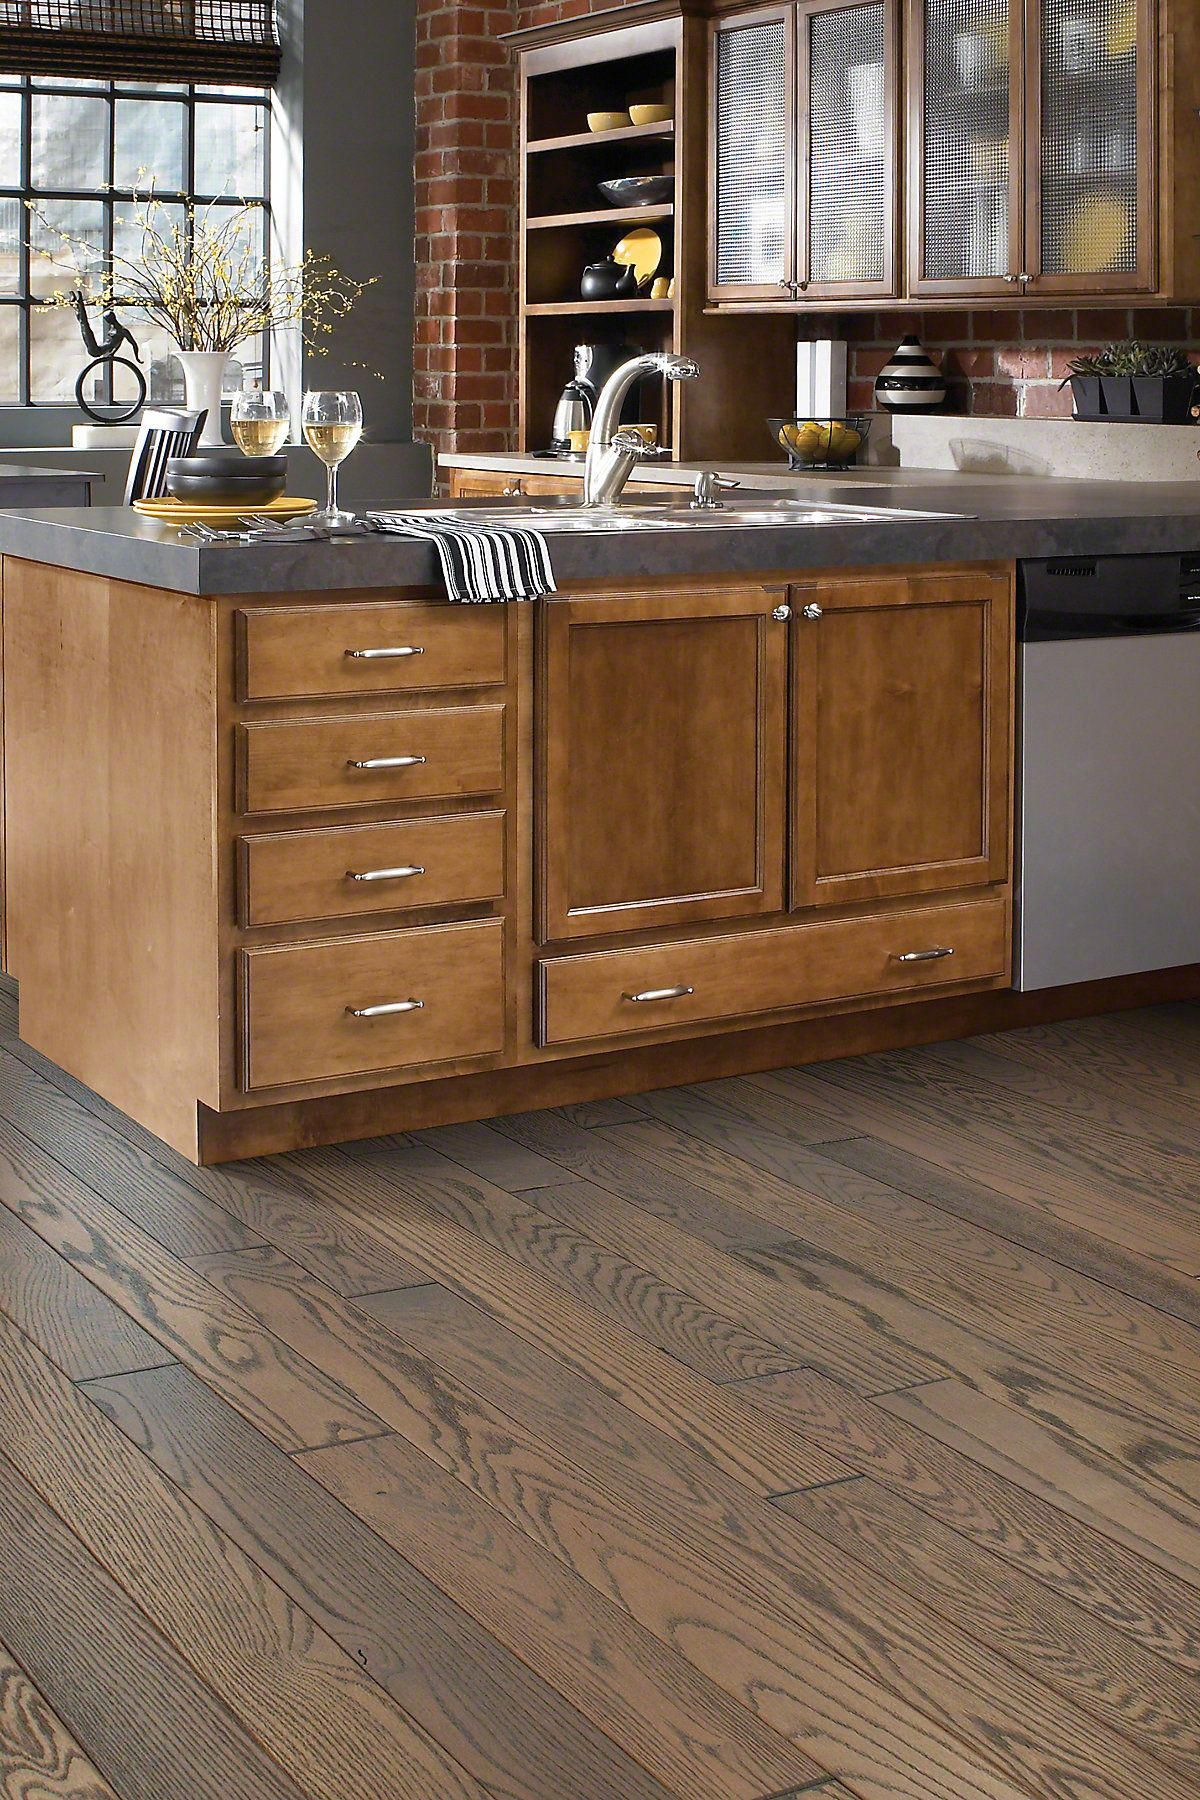 Superb Oak Wood Flooring Take A Look At Our Short Post For Much More Choices In 2020 Oak Kitchen Cabinets Honey Oak Cabinets Brown Kitchen Cabinets